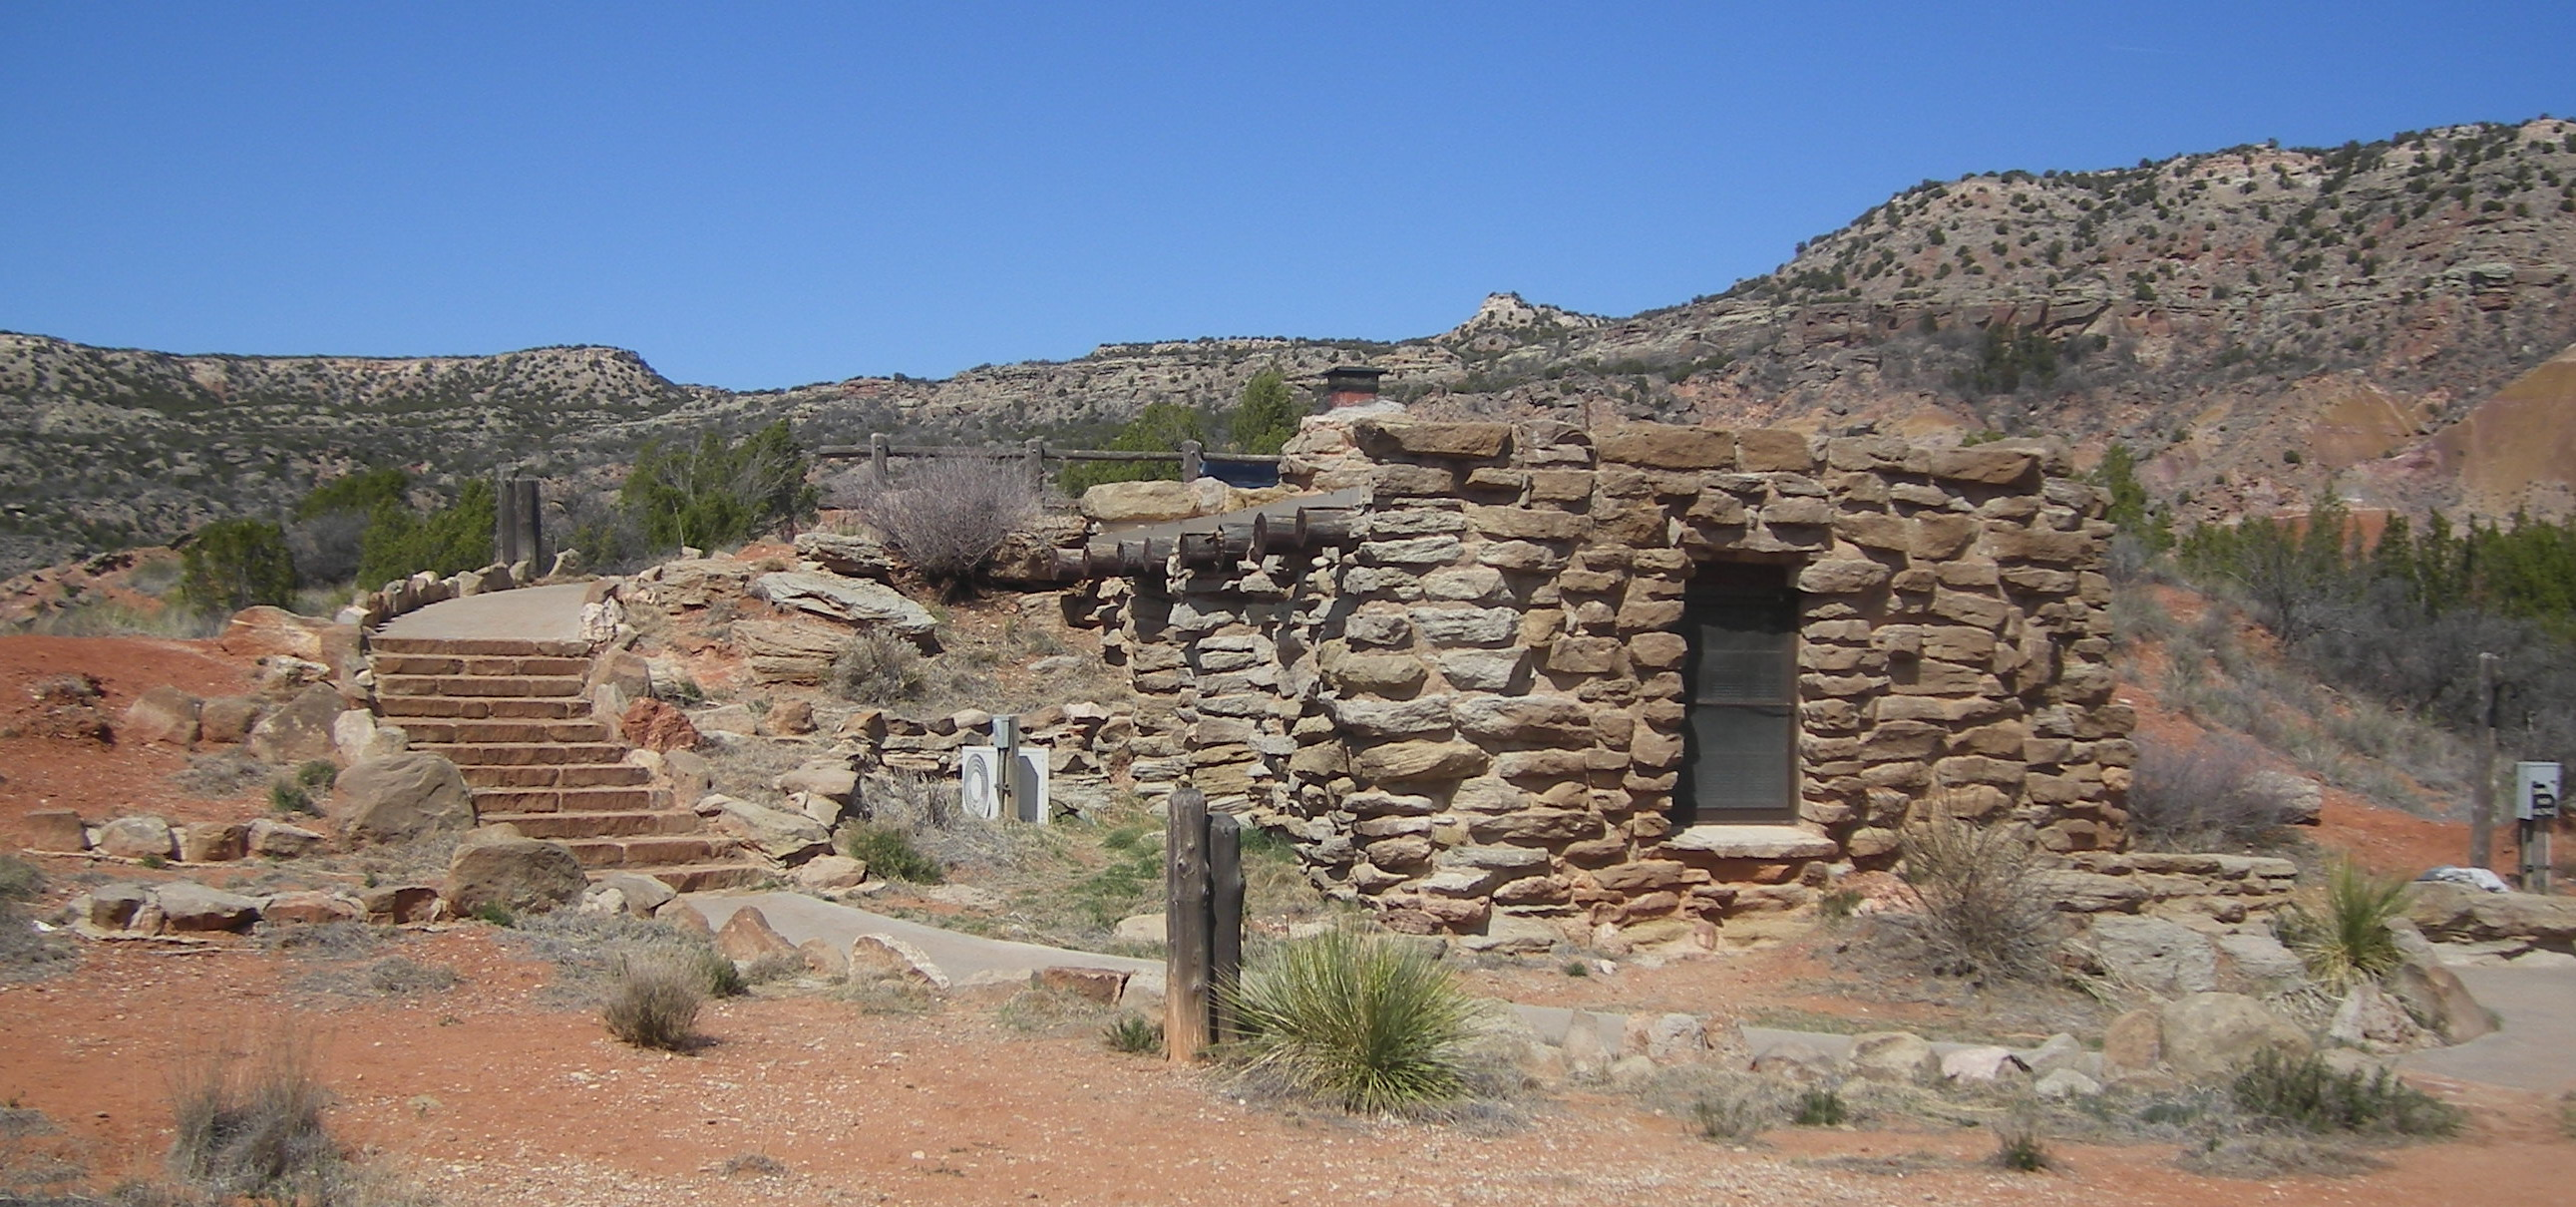 Cow Cabin Camping In Palo Duro Canyon Hoover S Corner